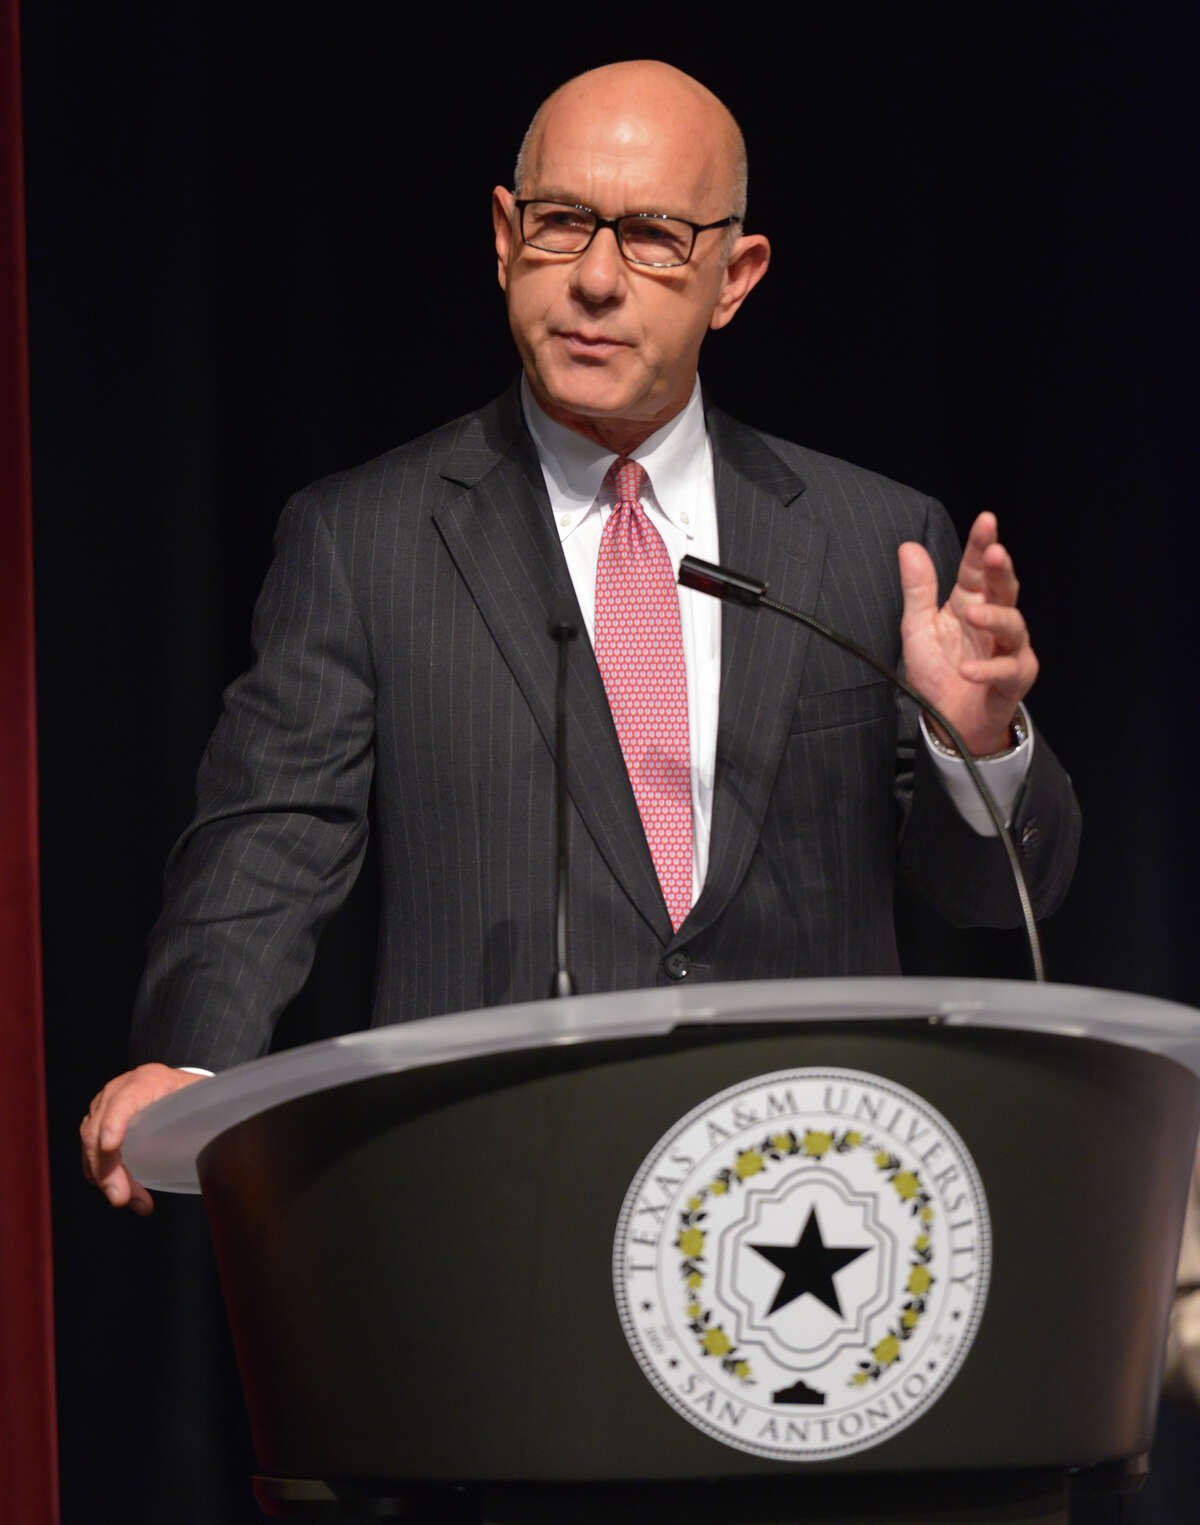 State Senator John Whitmire speaks during the debut ceremonies for the new Central Academc Building at Texas A&M San Antonio Wednesday morning.